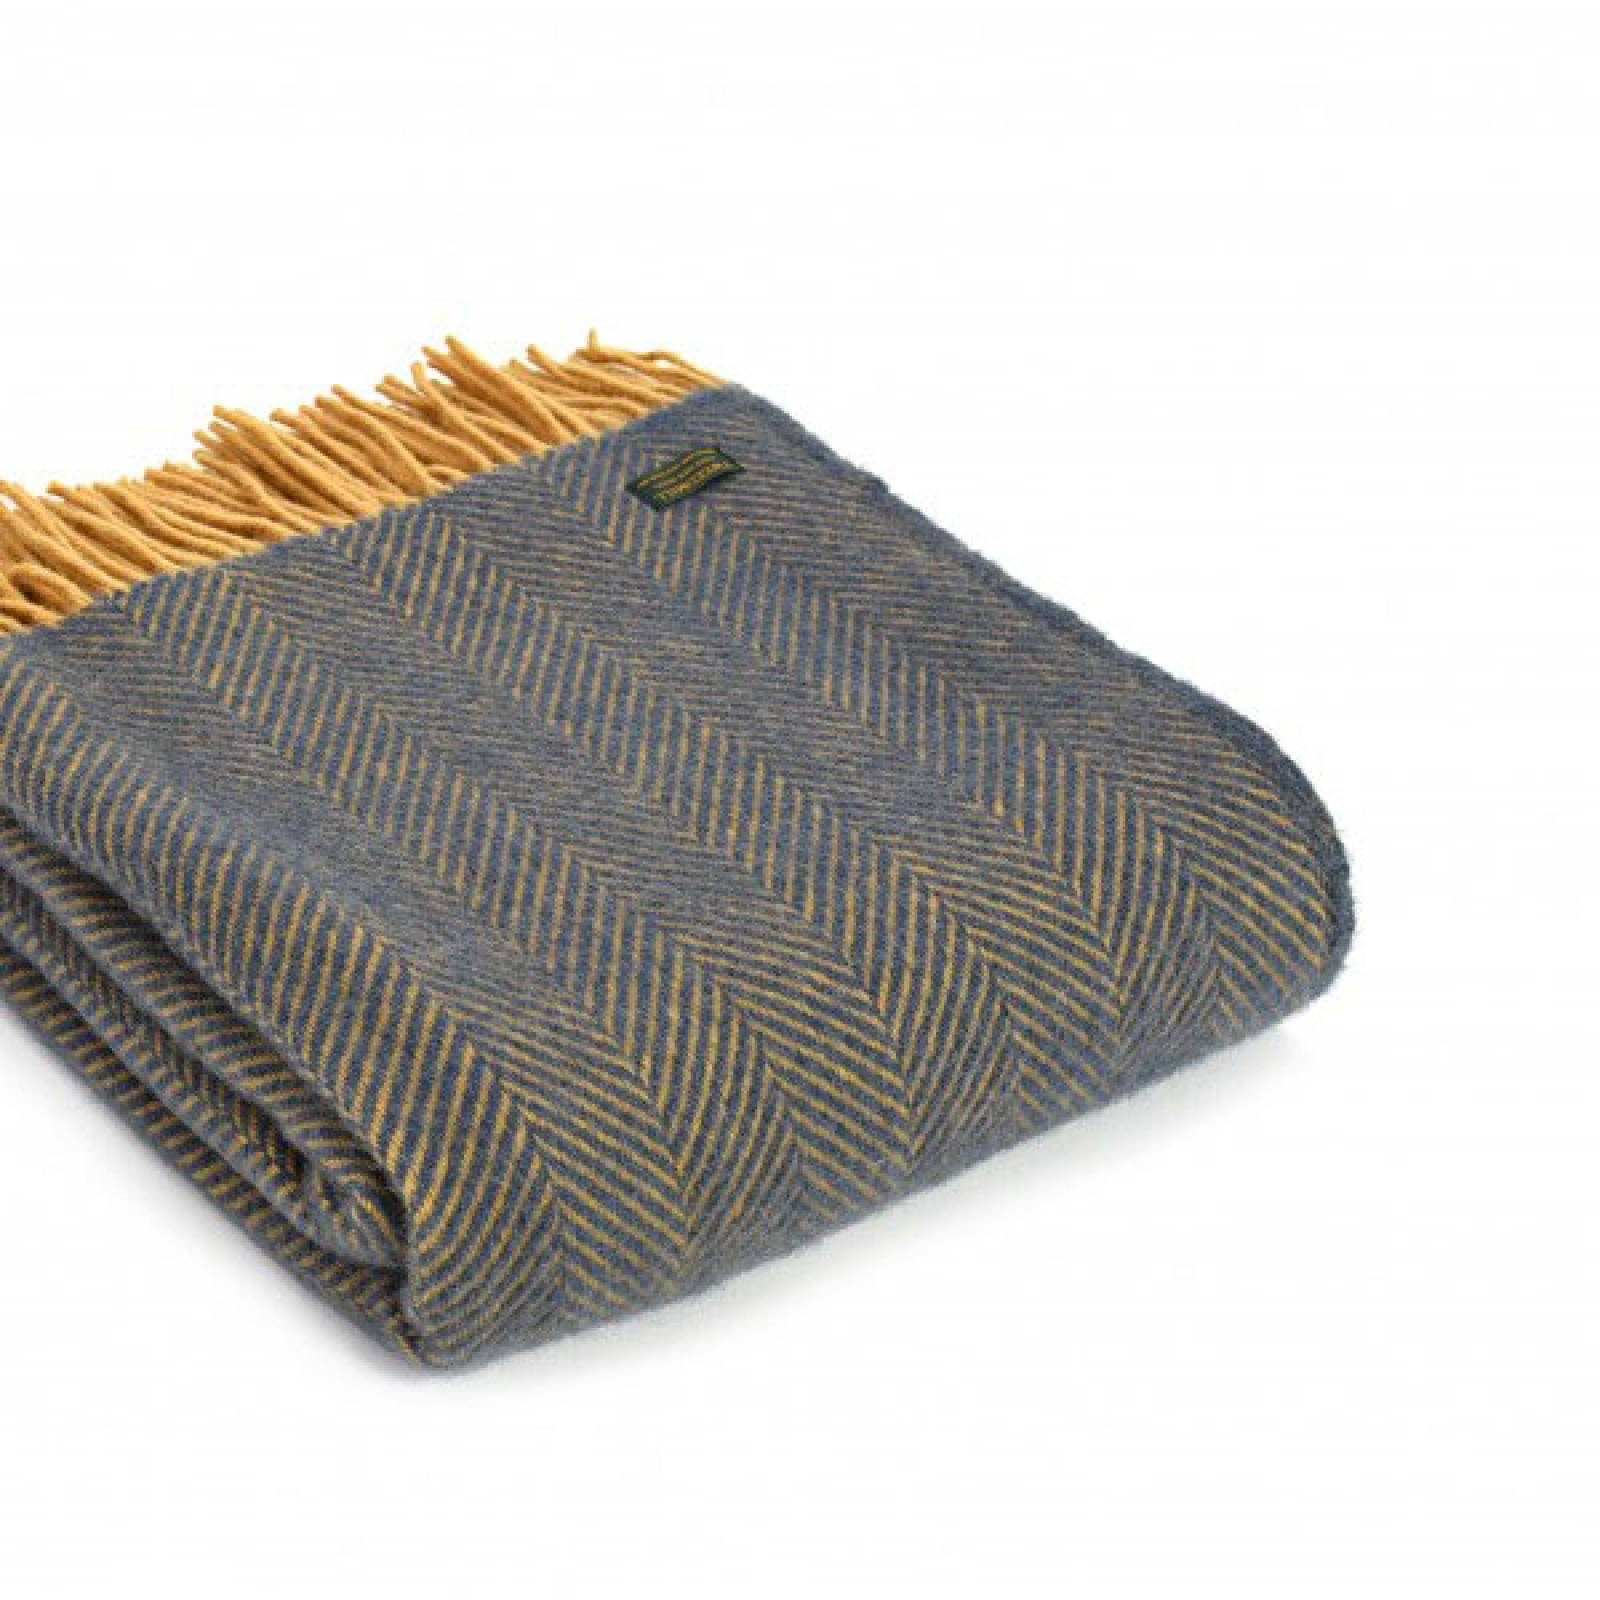 Navy Mustard Herringbone Throw Blanket 150x183cm